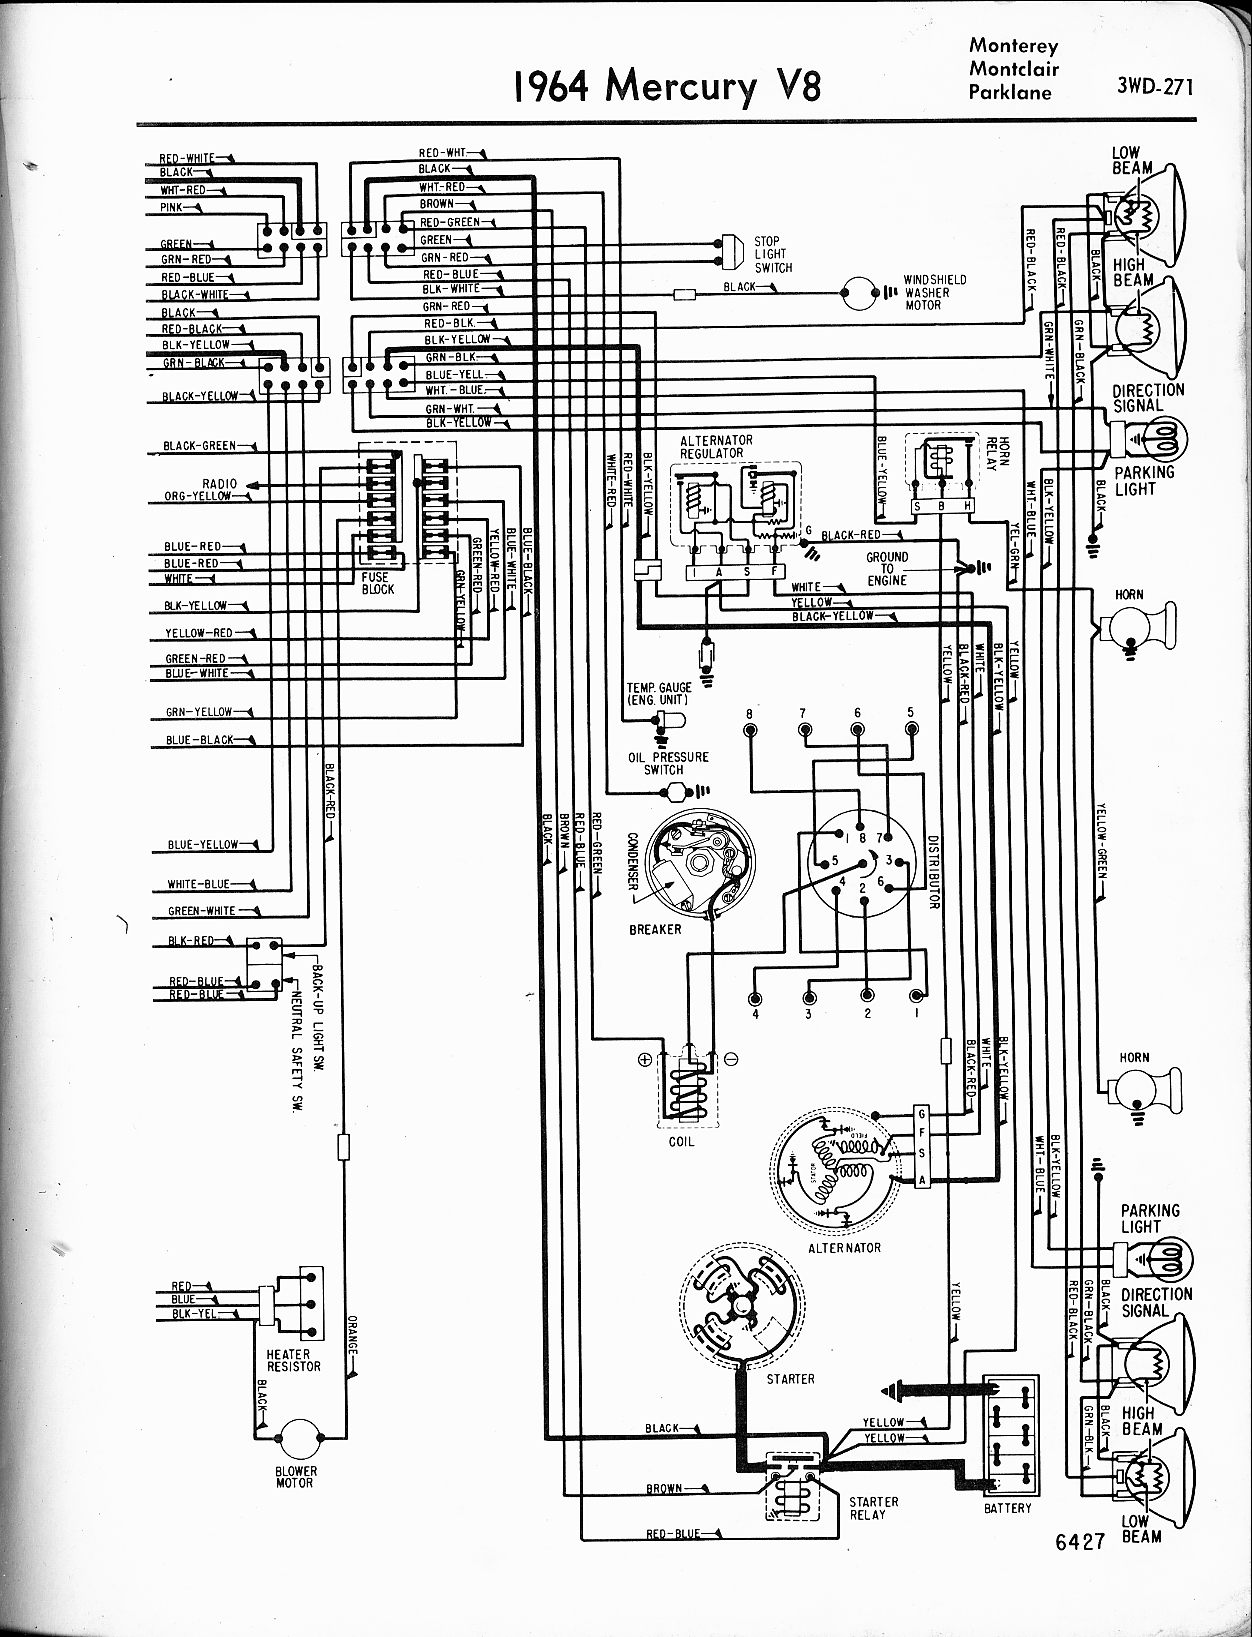 MWire5765 271 mercury wiring diagrams the old car manual project 1966 ford fairlane wiring diagram at gsmportal.co